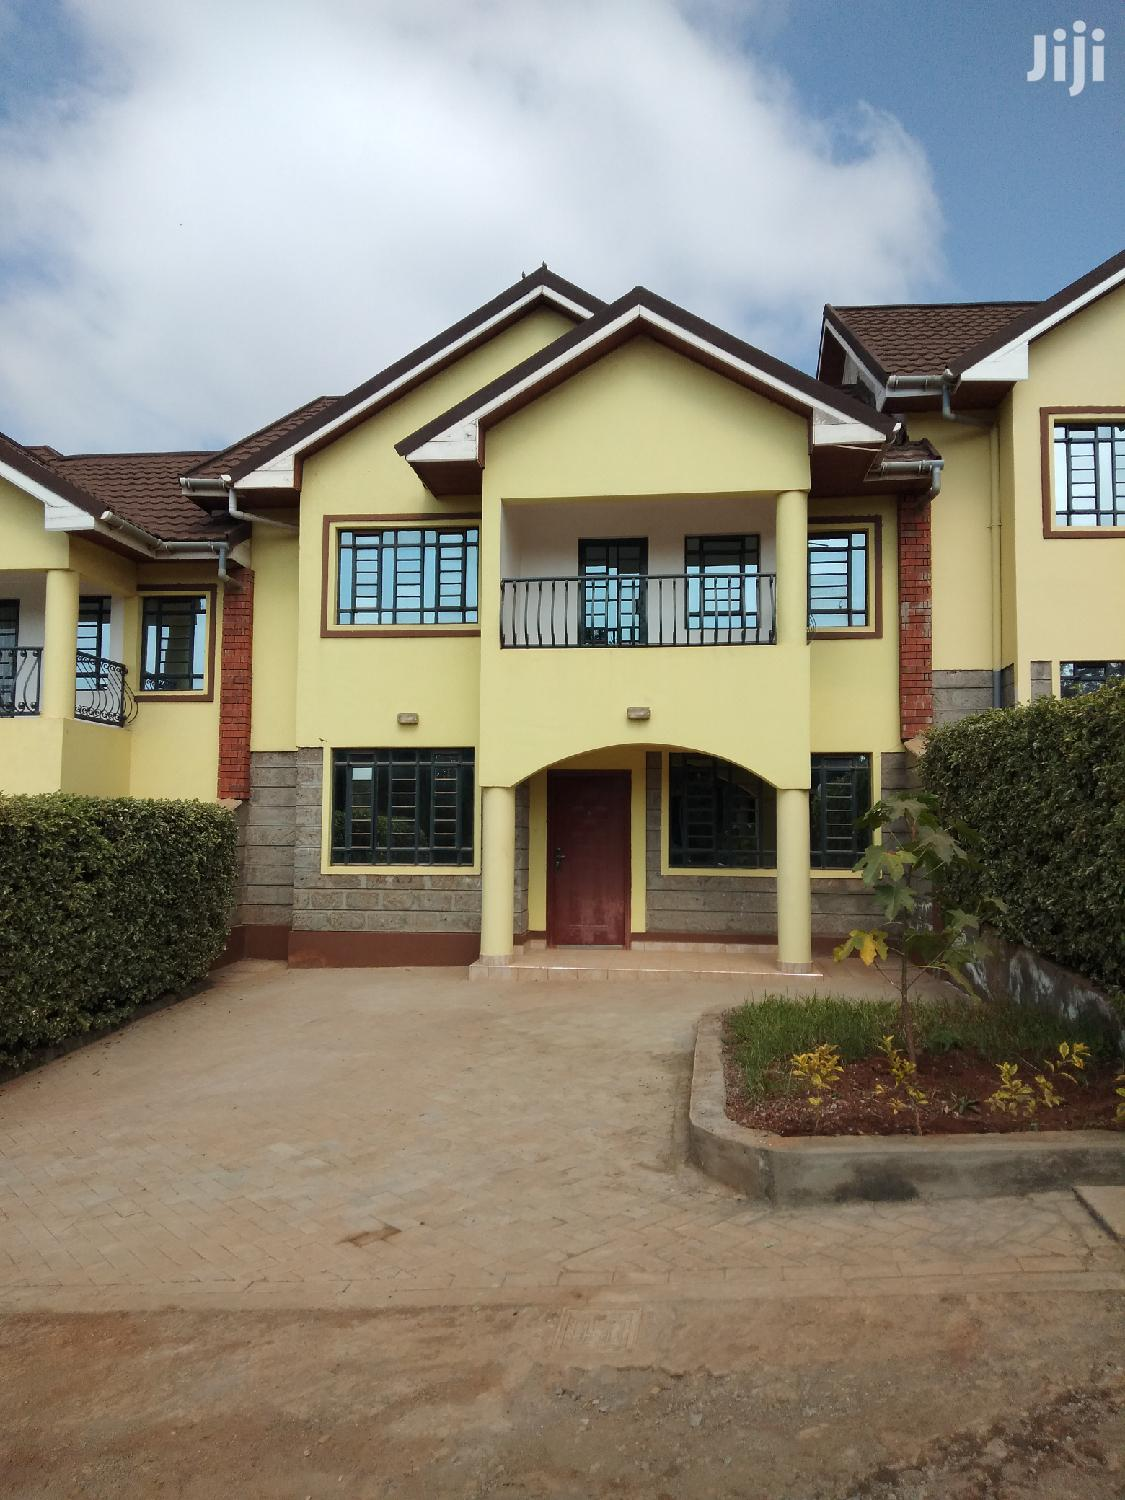 Town House to Let in Ngong Kibiko